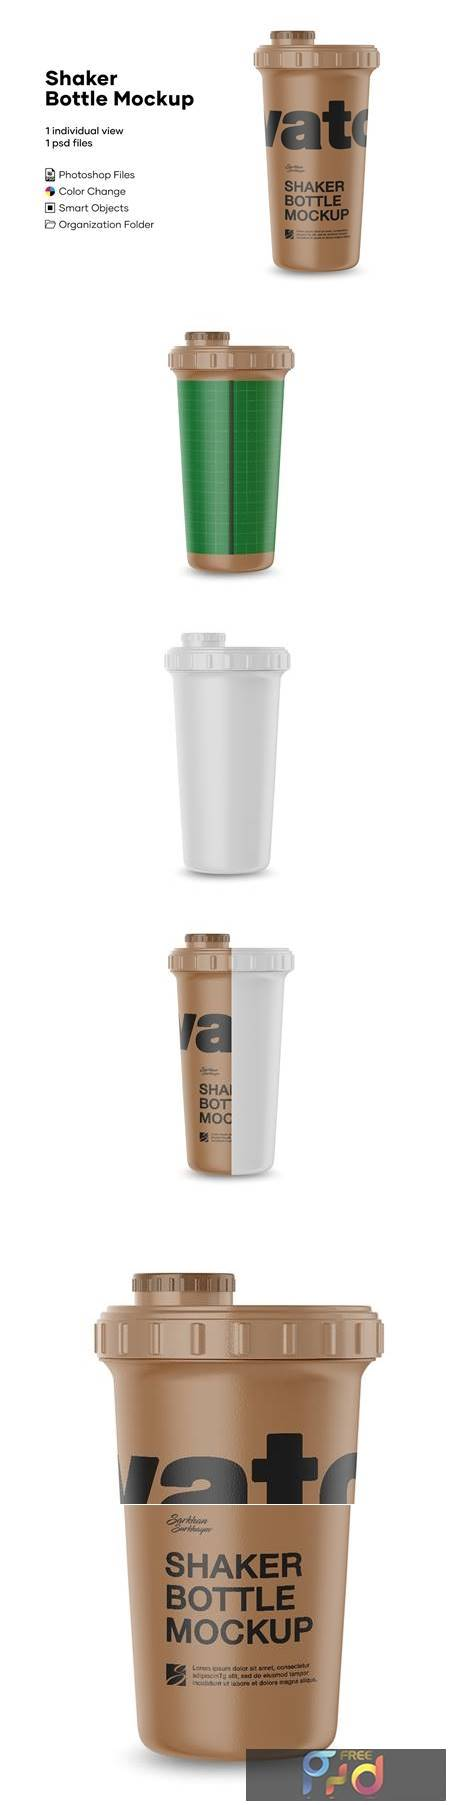 Matte Metallic Shaker Bottle Mockup 4889093 1